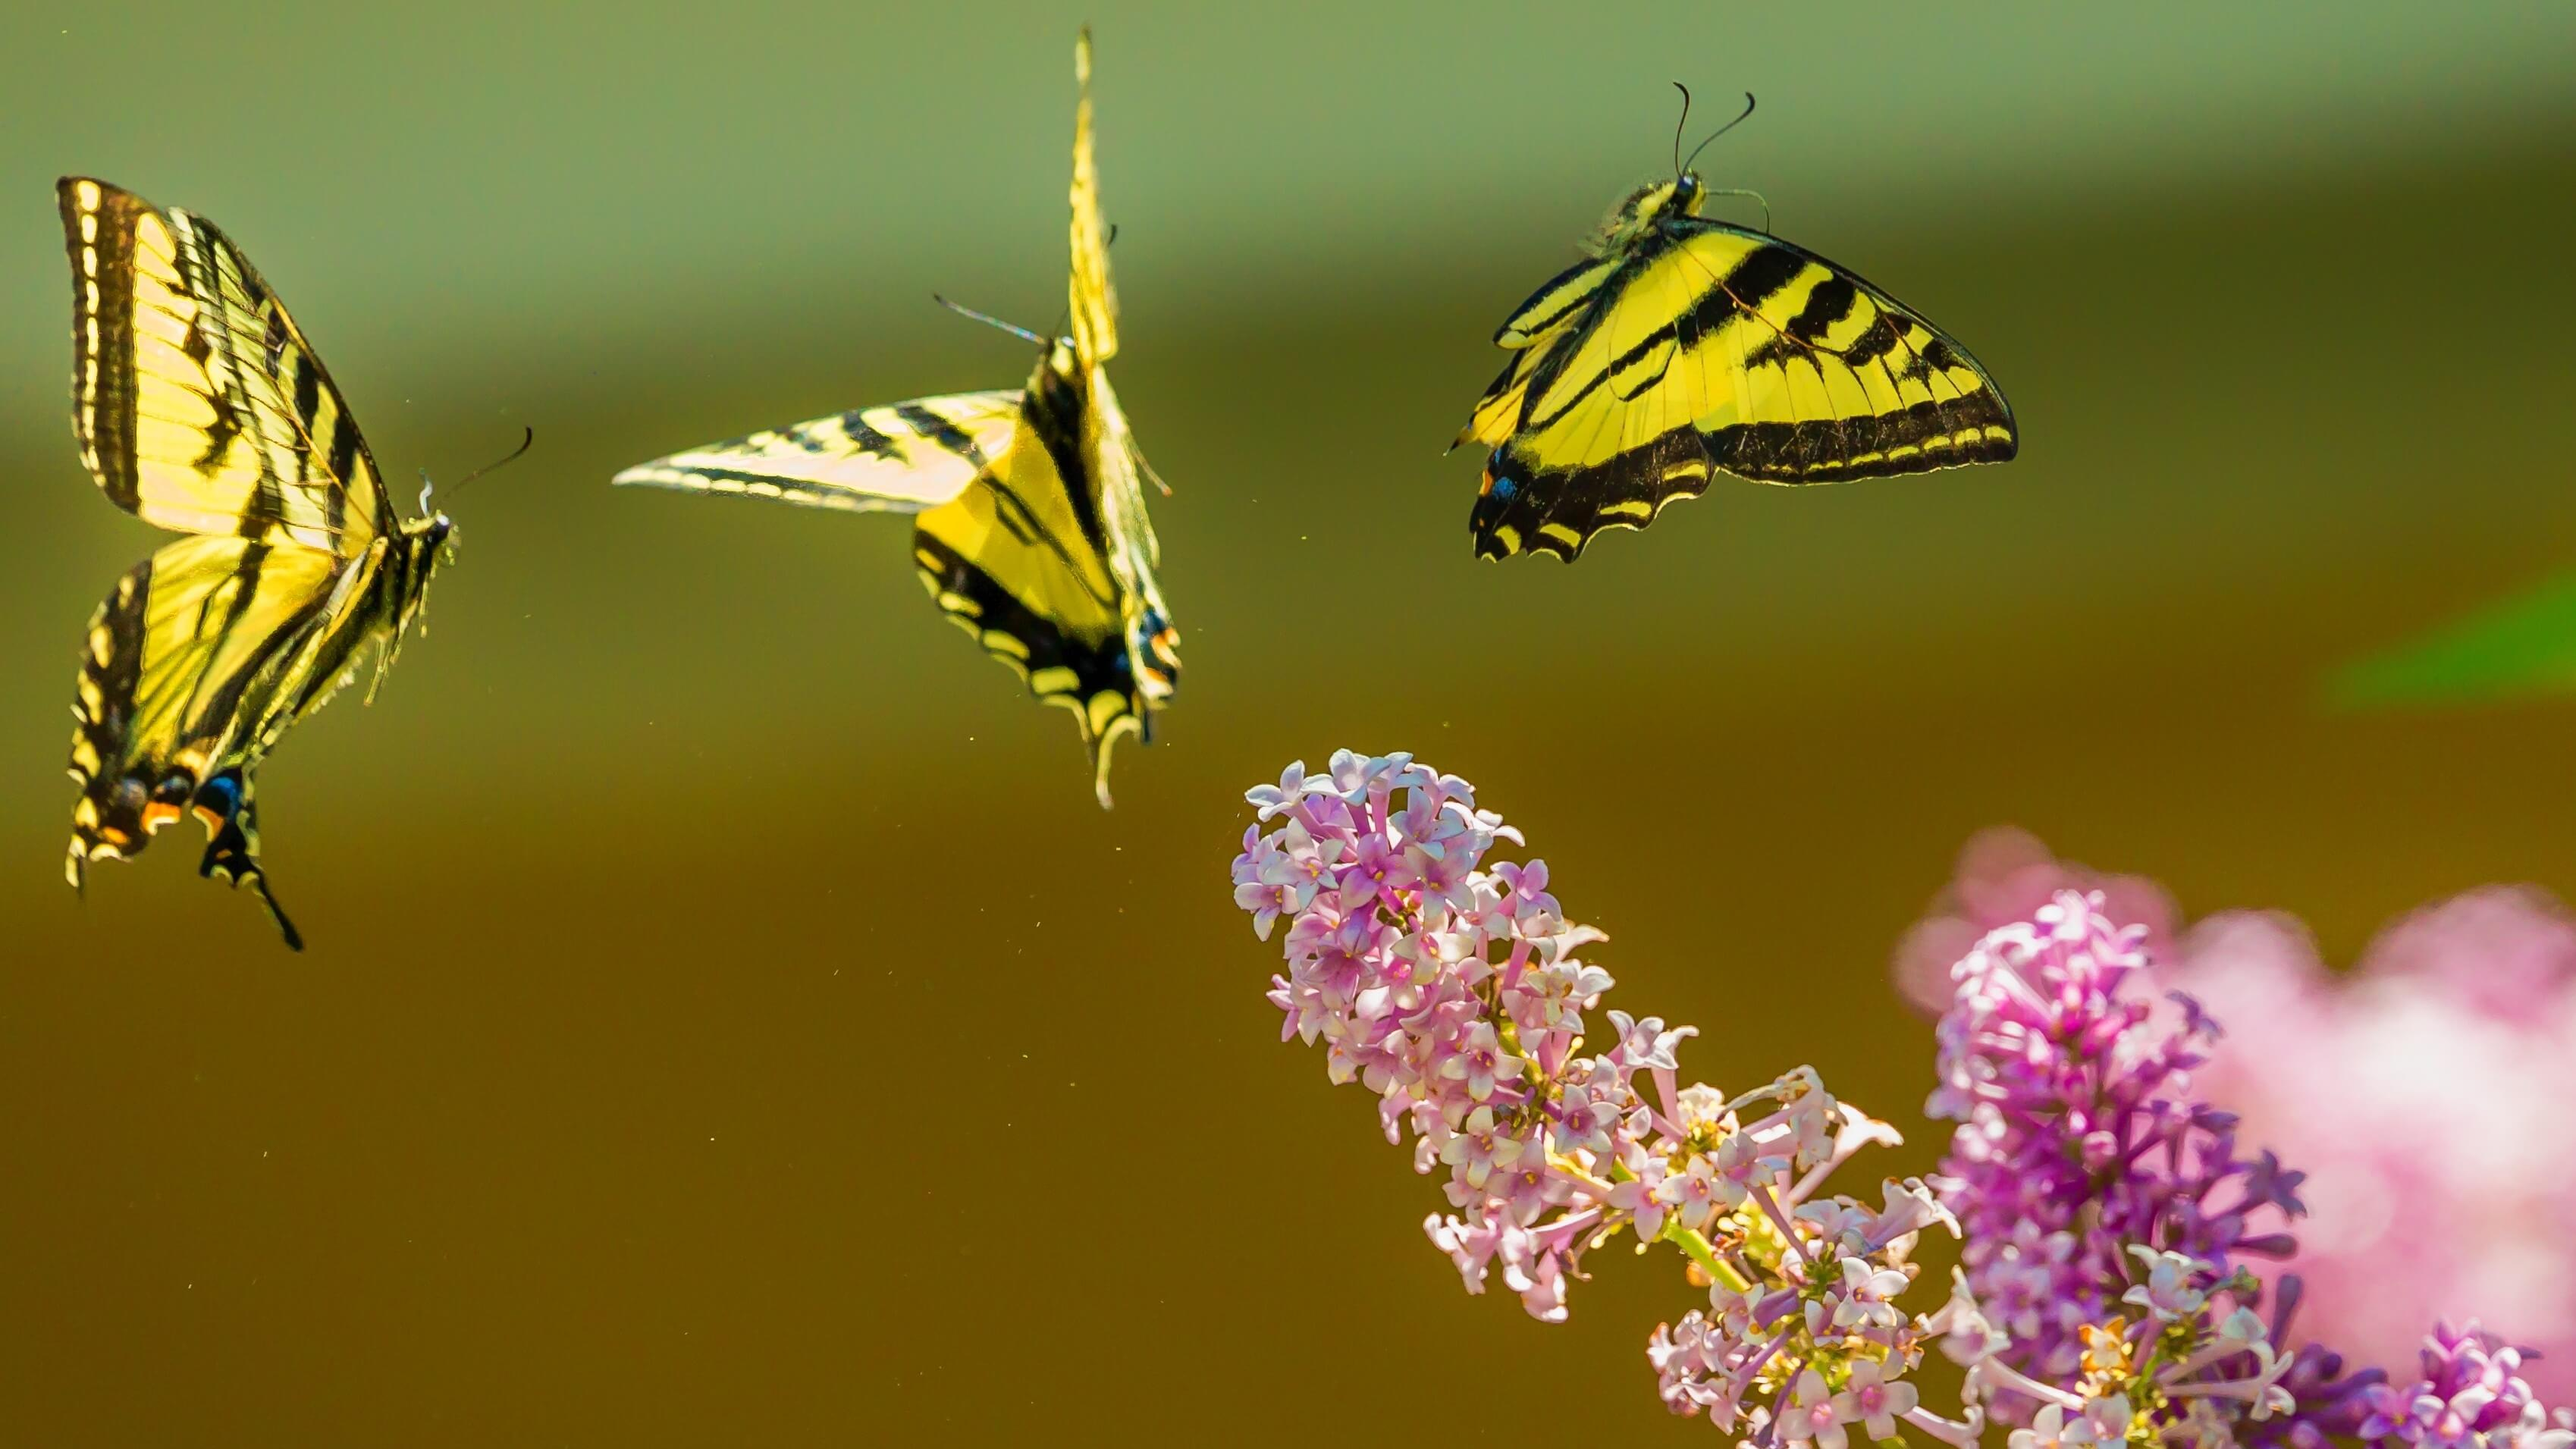 California Becomes Drought-Free, Attracts One Billion Butterflies